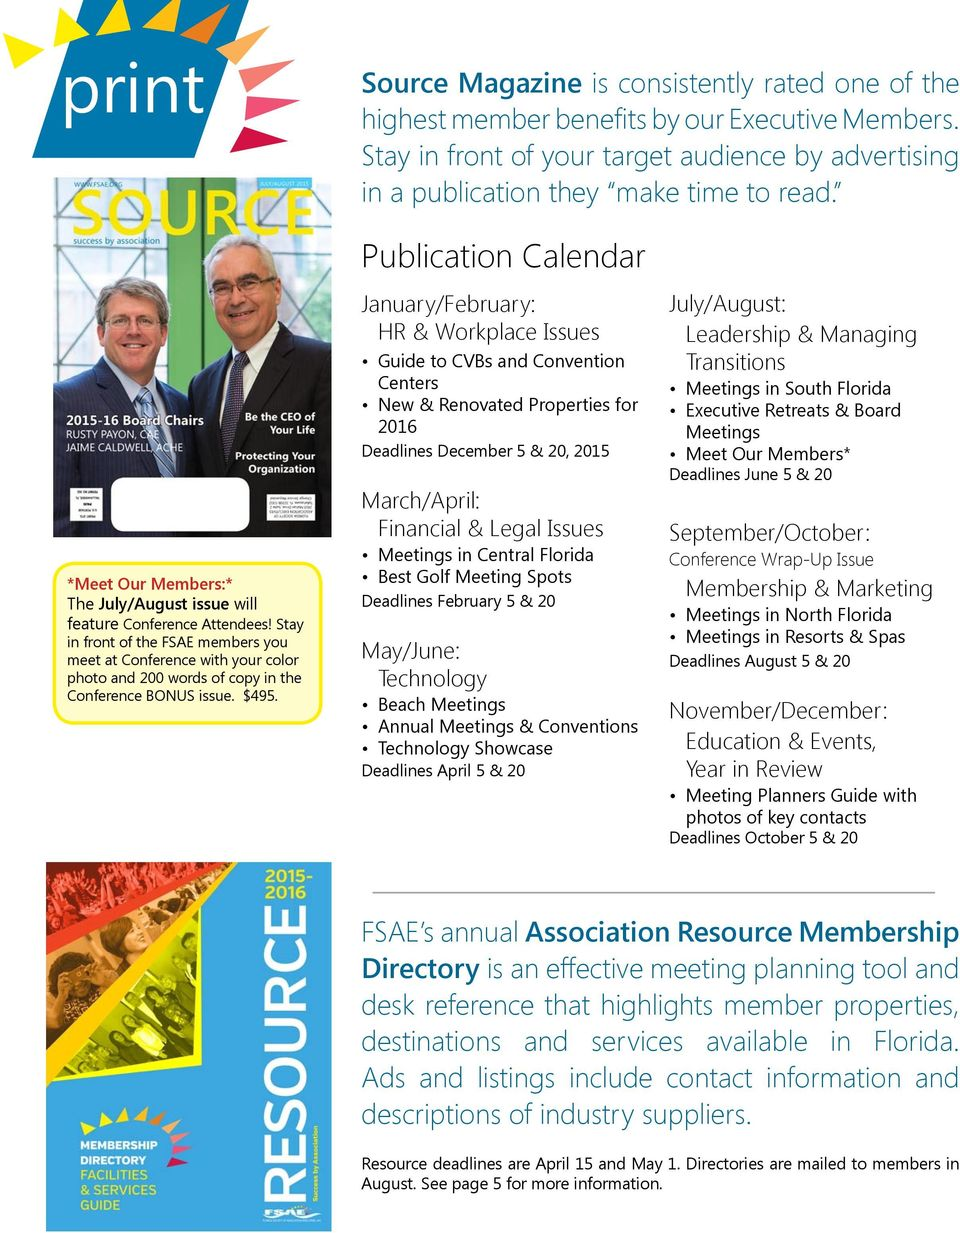 Stay in front of the FSAE members you meet at Conference with your color photo and 200 words of copy in the Conference BONUS issue. $495.